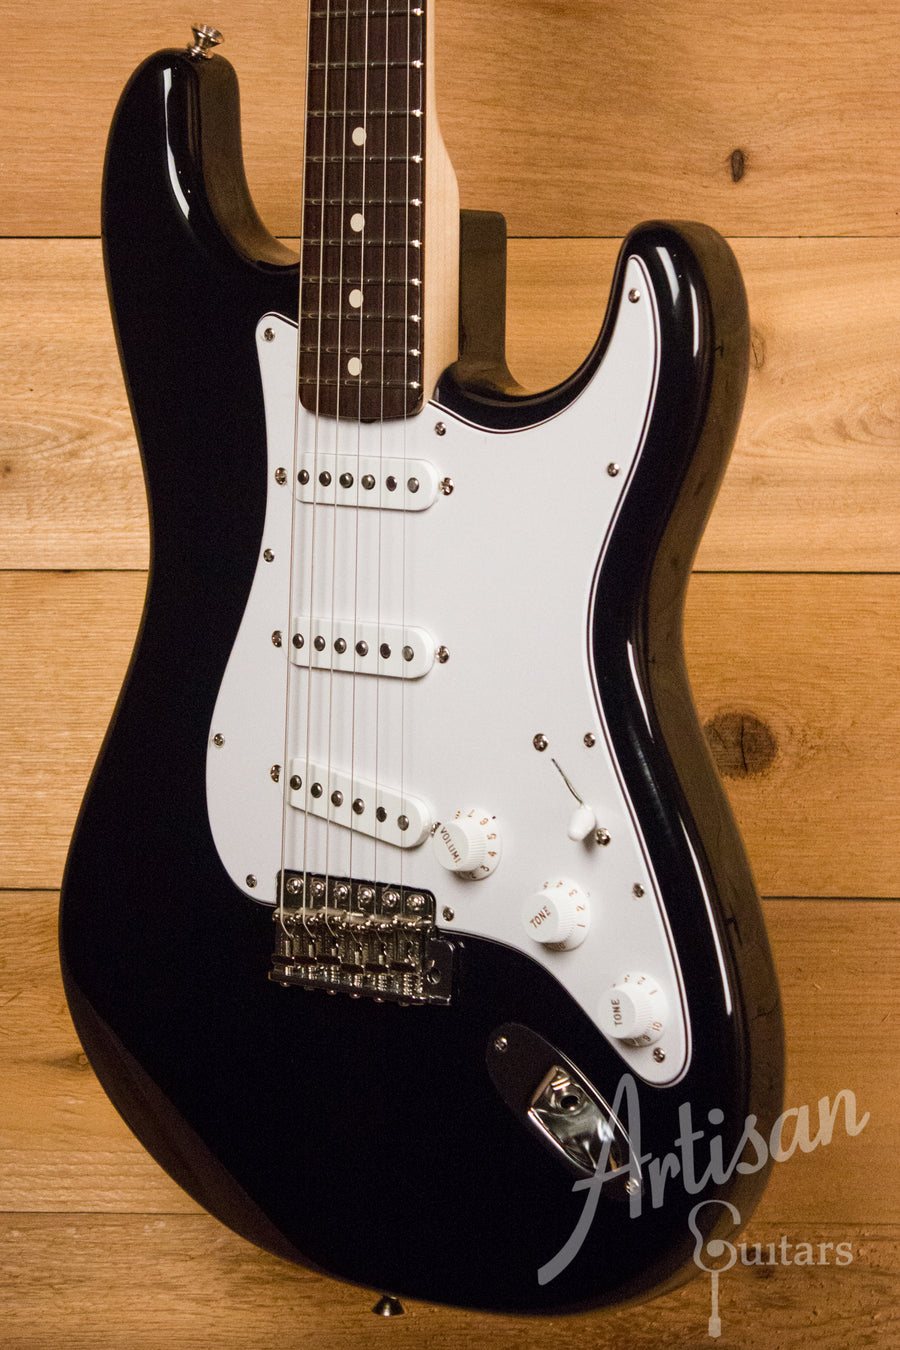 Fender Custom Shop 1960's Stratocaster NOS Gloss Black Finish Pre-Owned 2011 ID-11511